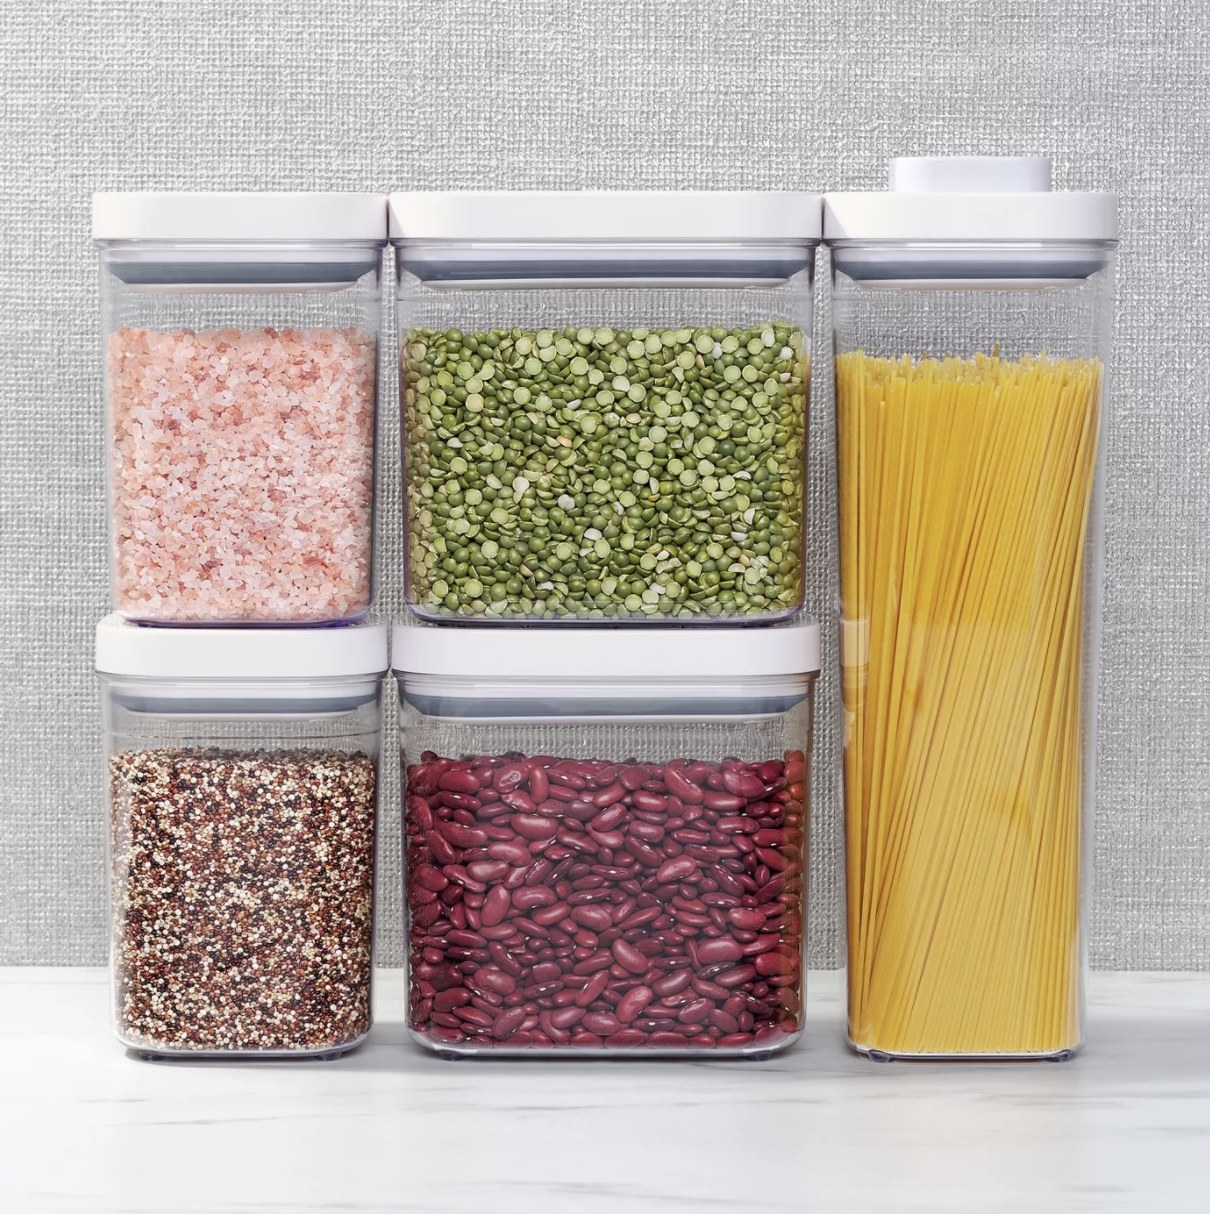 A set of five clear plastic containers with white tops holding various foodstuffs